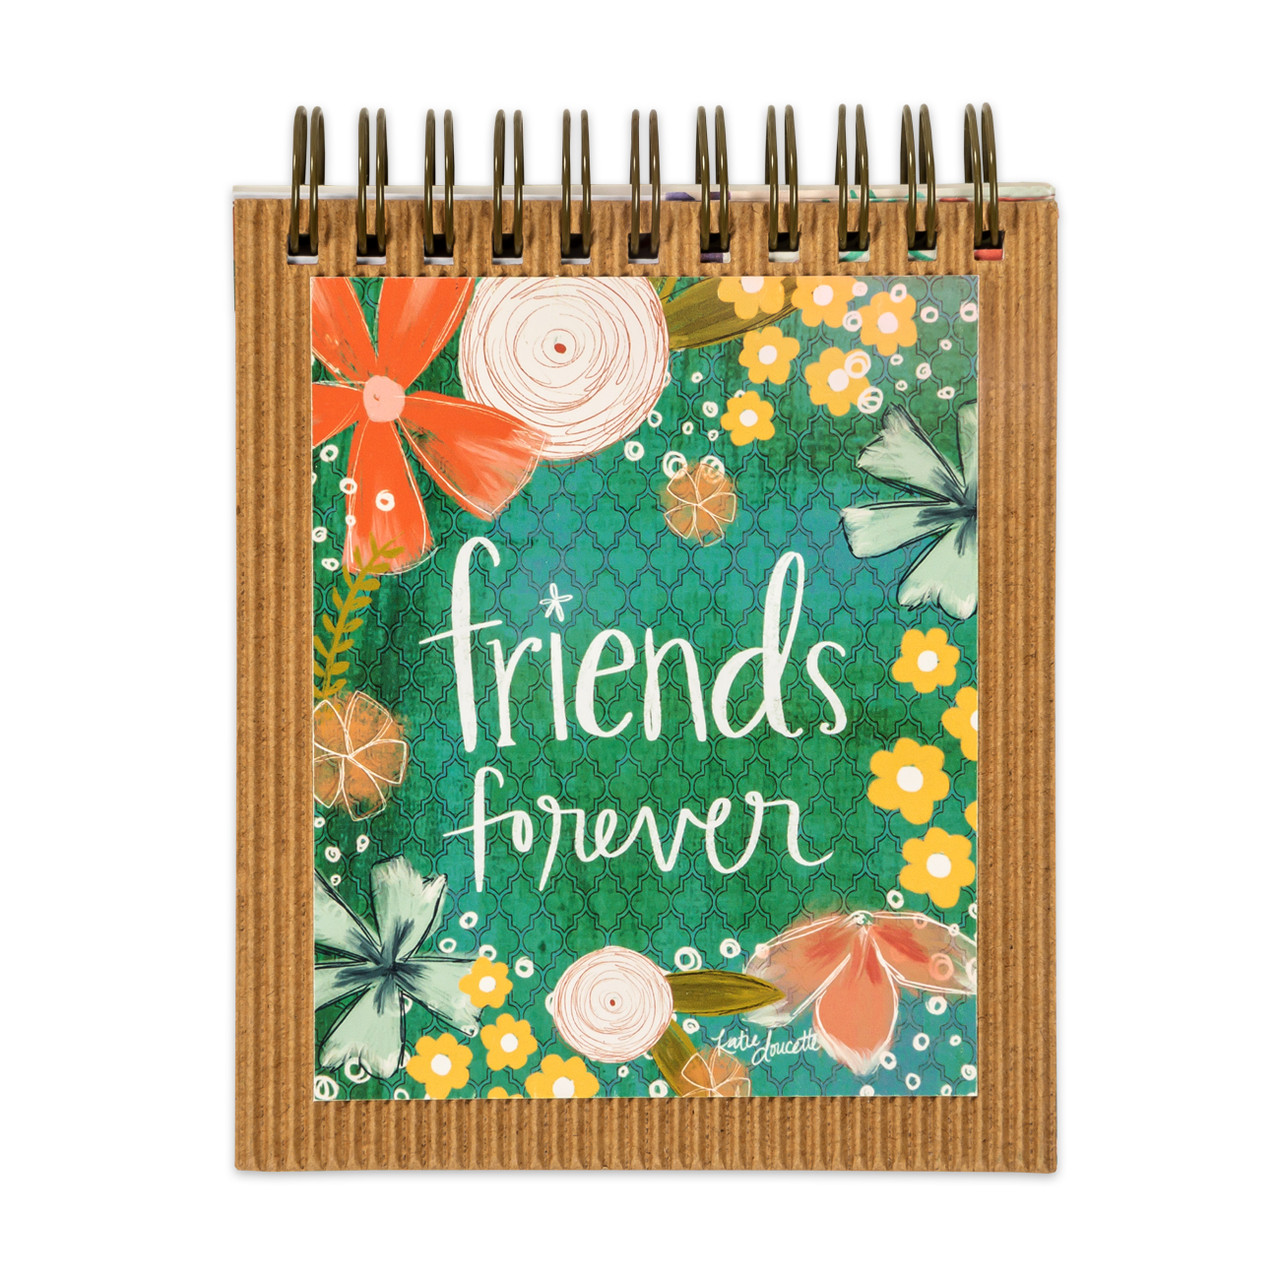 easelbook friends forever gift inspirational